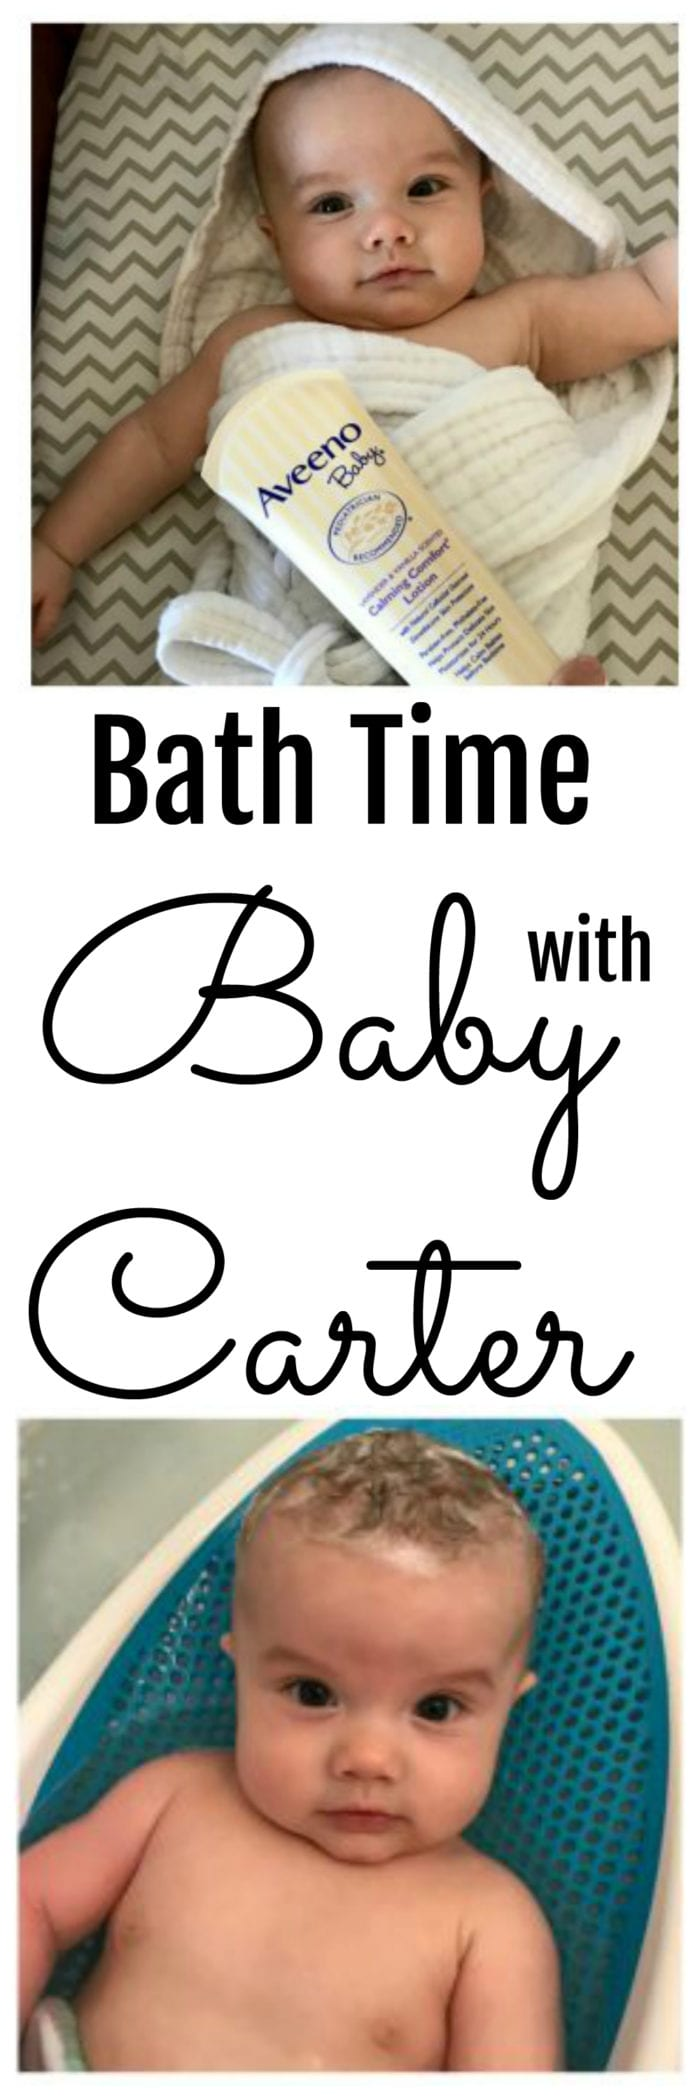 #ad Bath Time with Baby Carter-- Meet my new grandson Carter! @walmart #MommyMustHaves www.cookingwithruthie.com